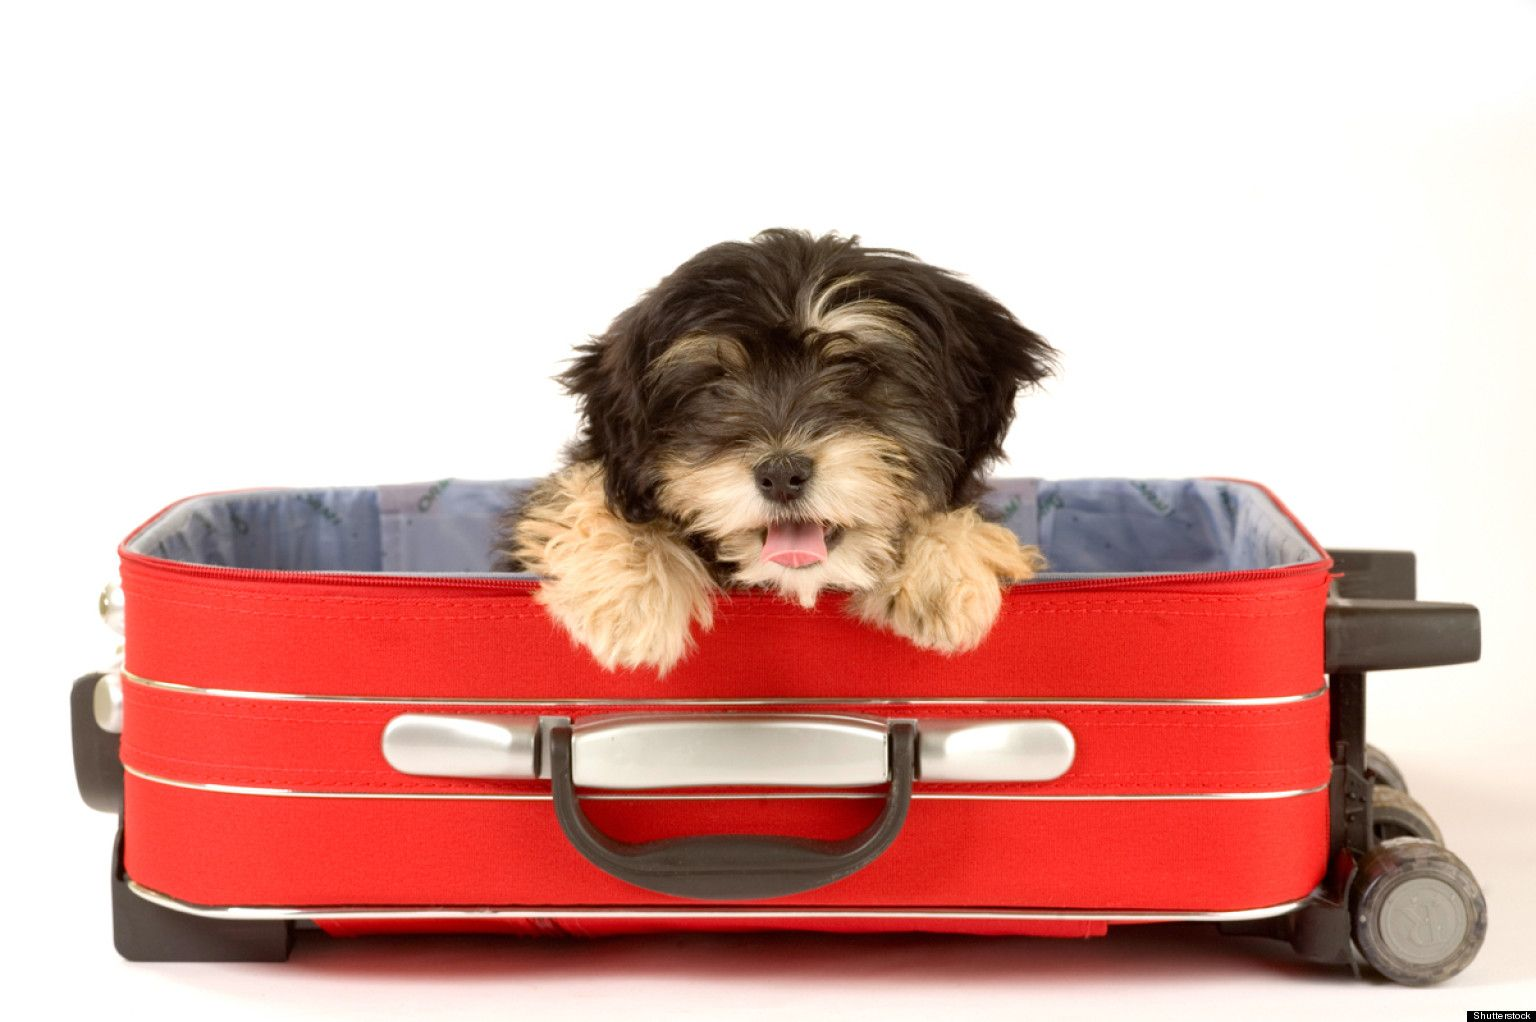 PHOTOS: Adorable Dogs Hanging Out In Suitcases via Huff Post